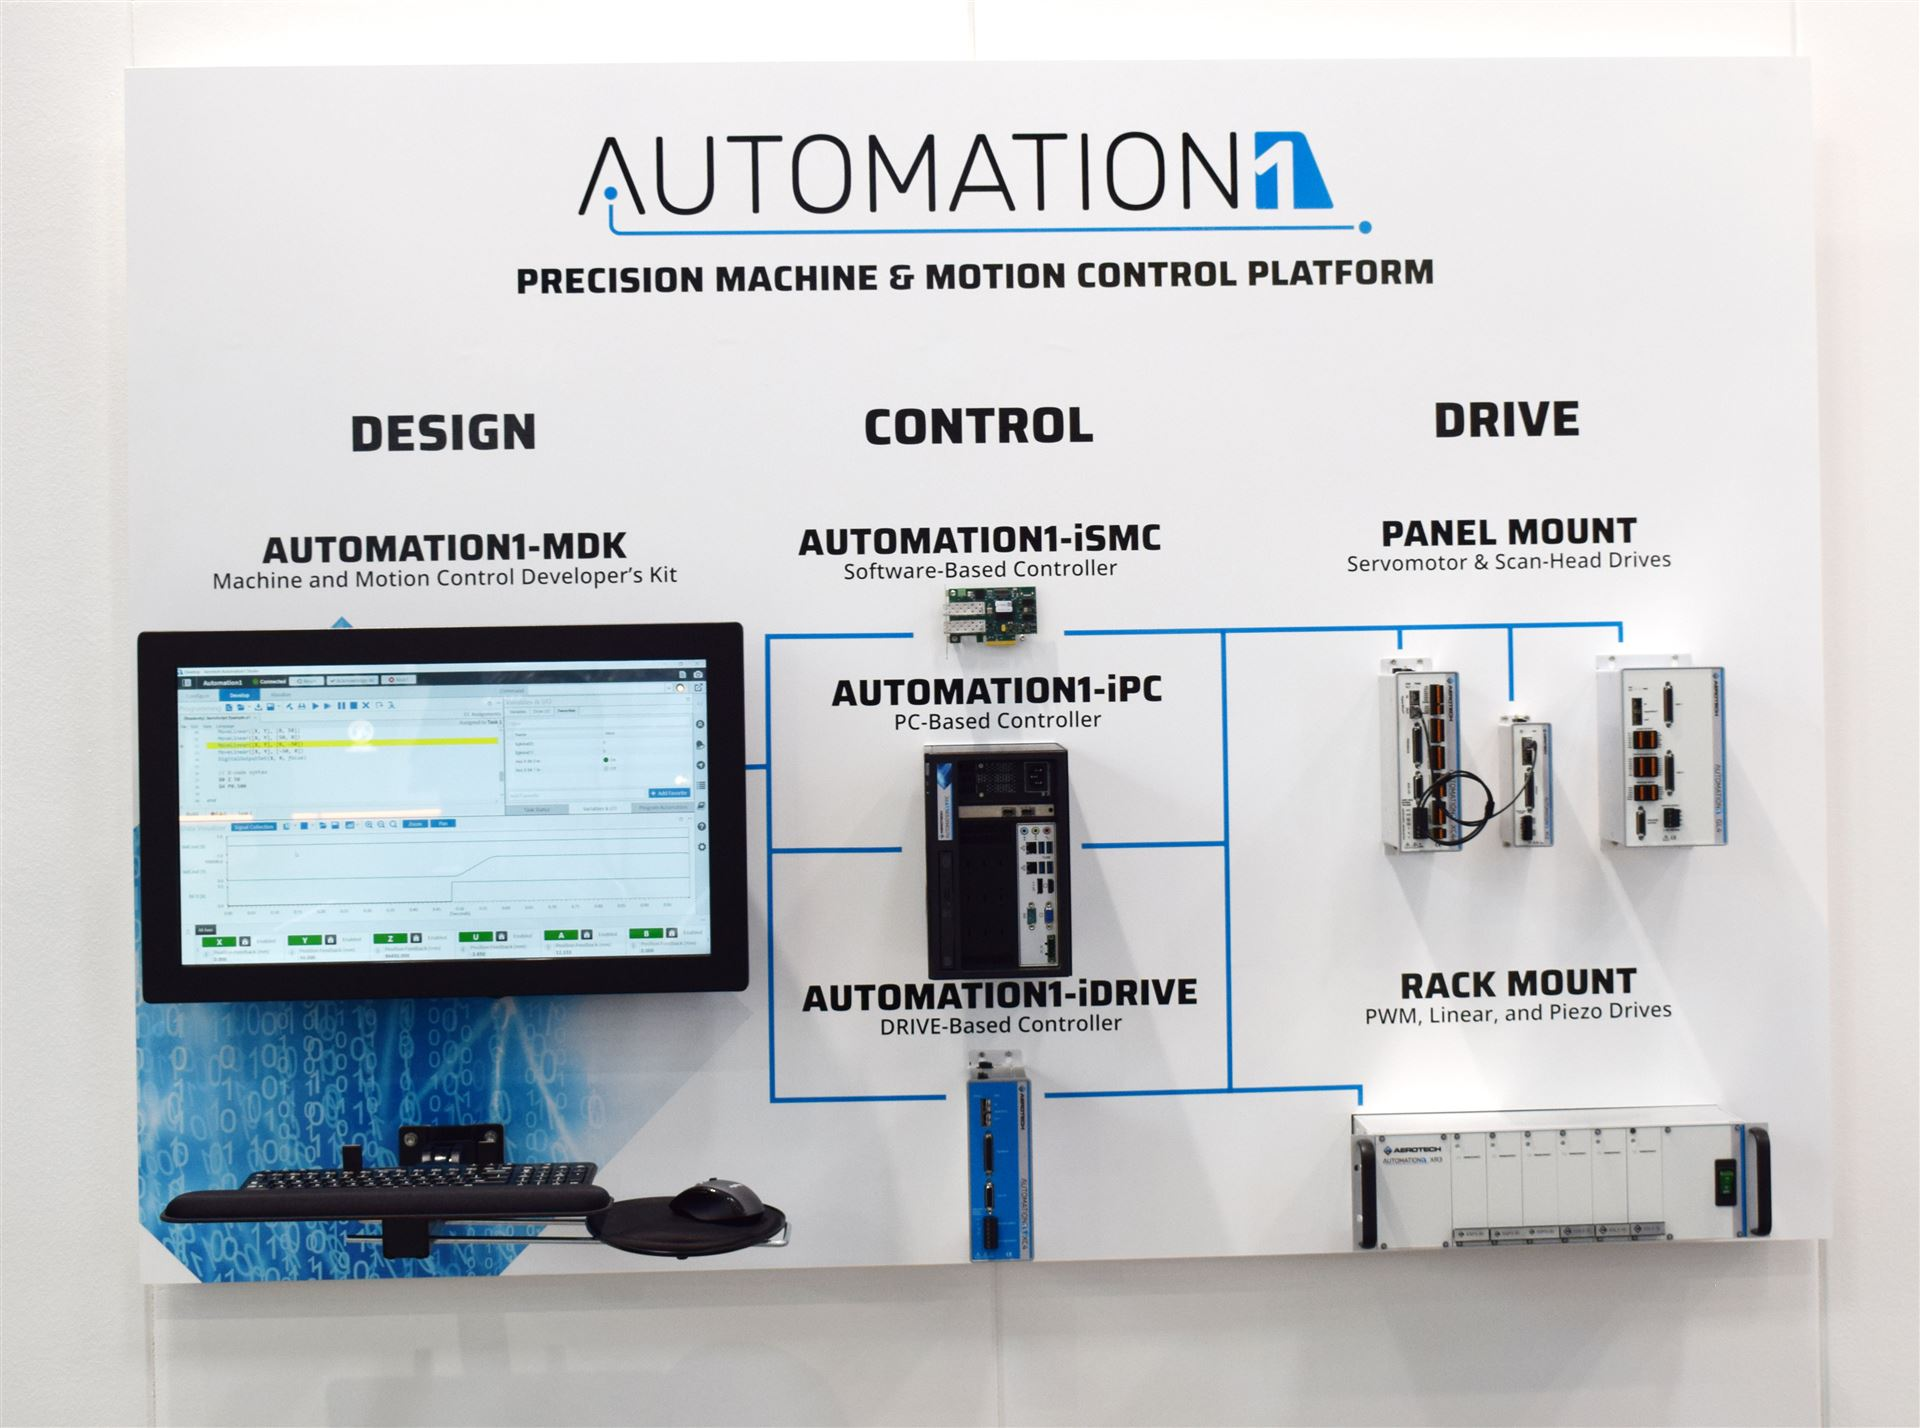 Automation1 brings a new momentum to motion control and positioning systems